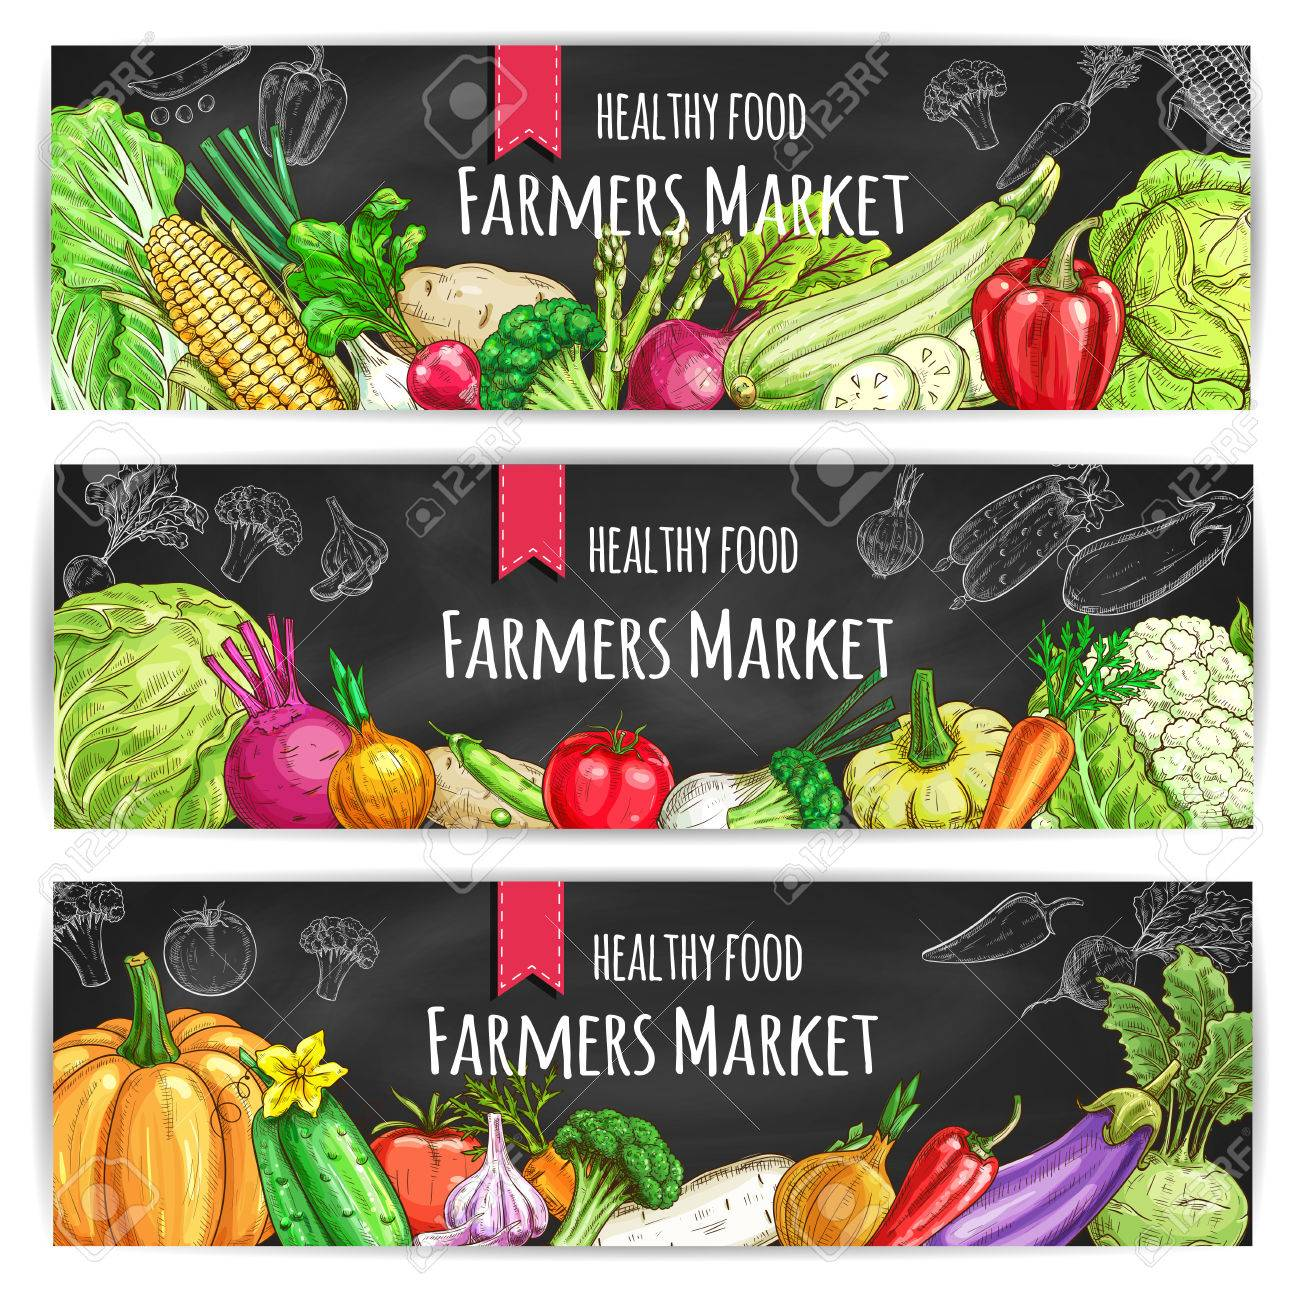 Veggies of farmer market. Vegetarian healthy food banners set. Chalk sketch vegetable pumpkin and cabbage, onion and broccoli, pepper and cucumber, tomato and celery, radish, carrot and beet, potato on blackboard - 65362581